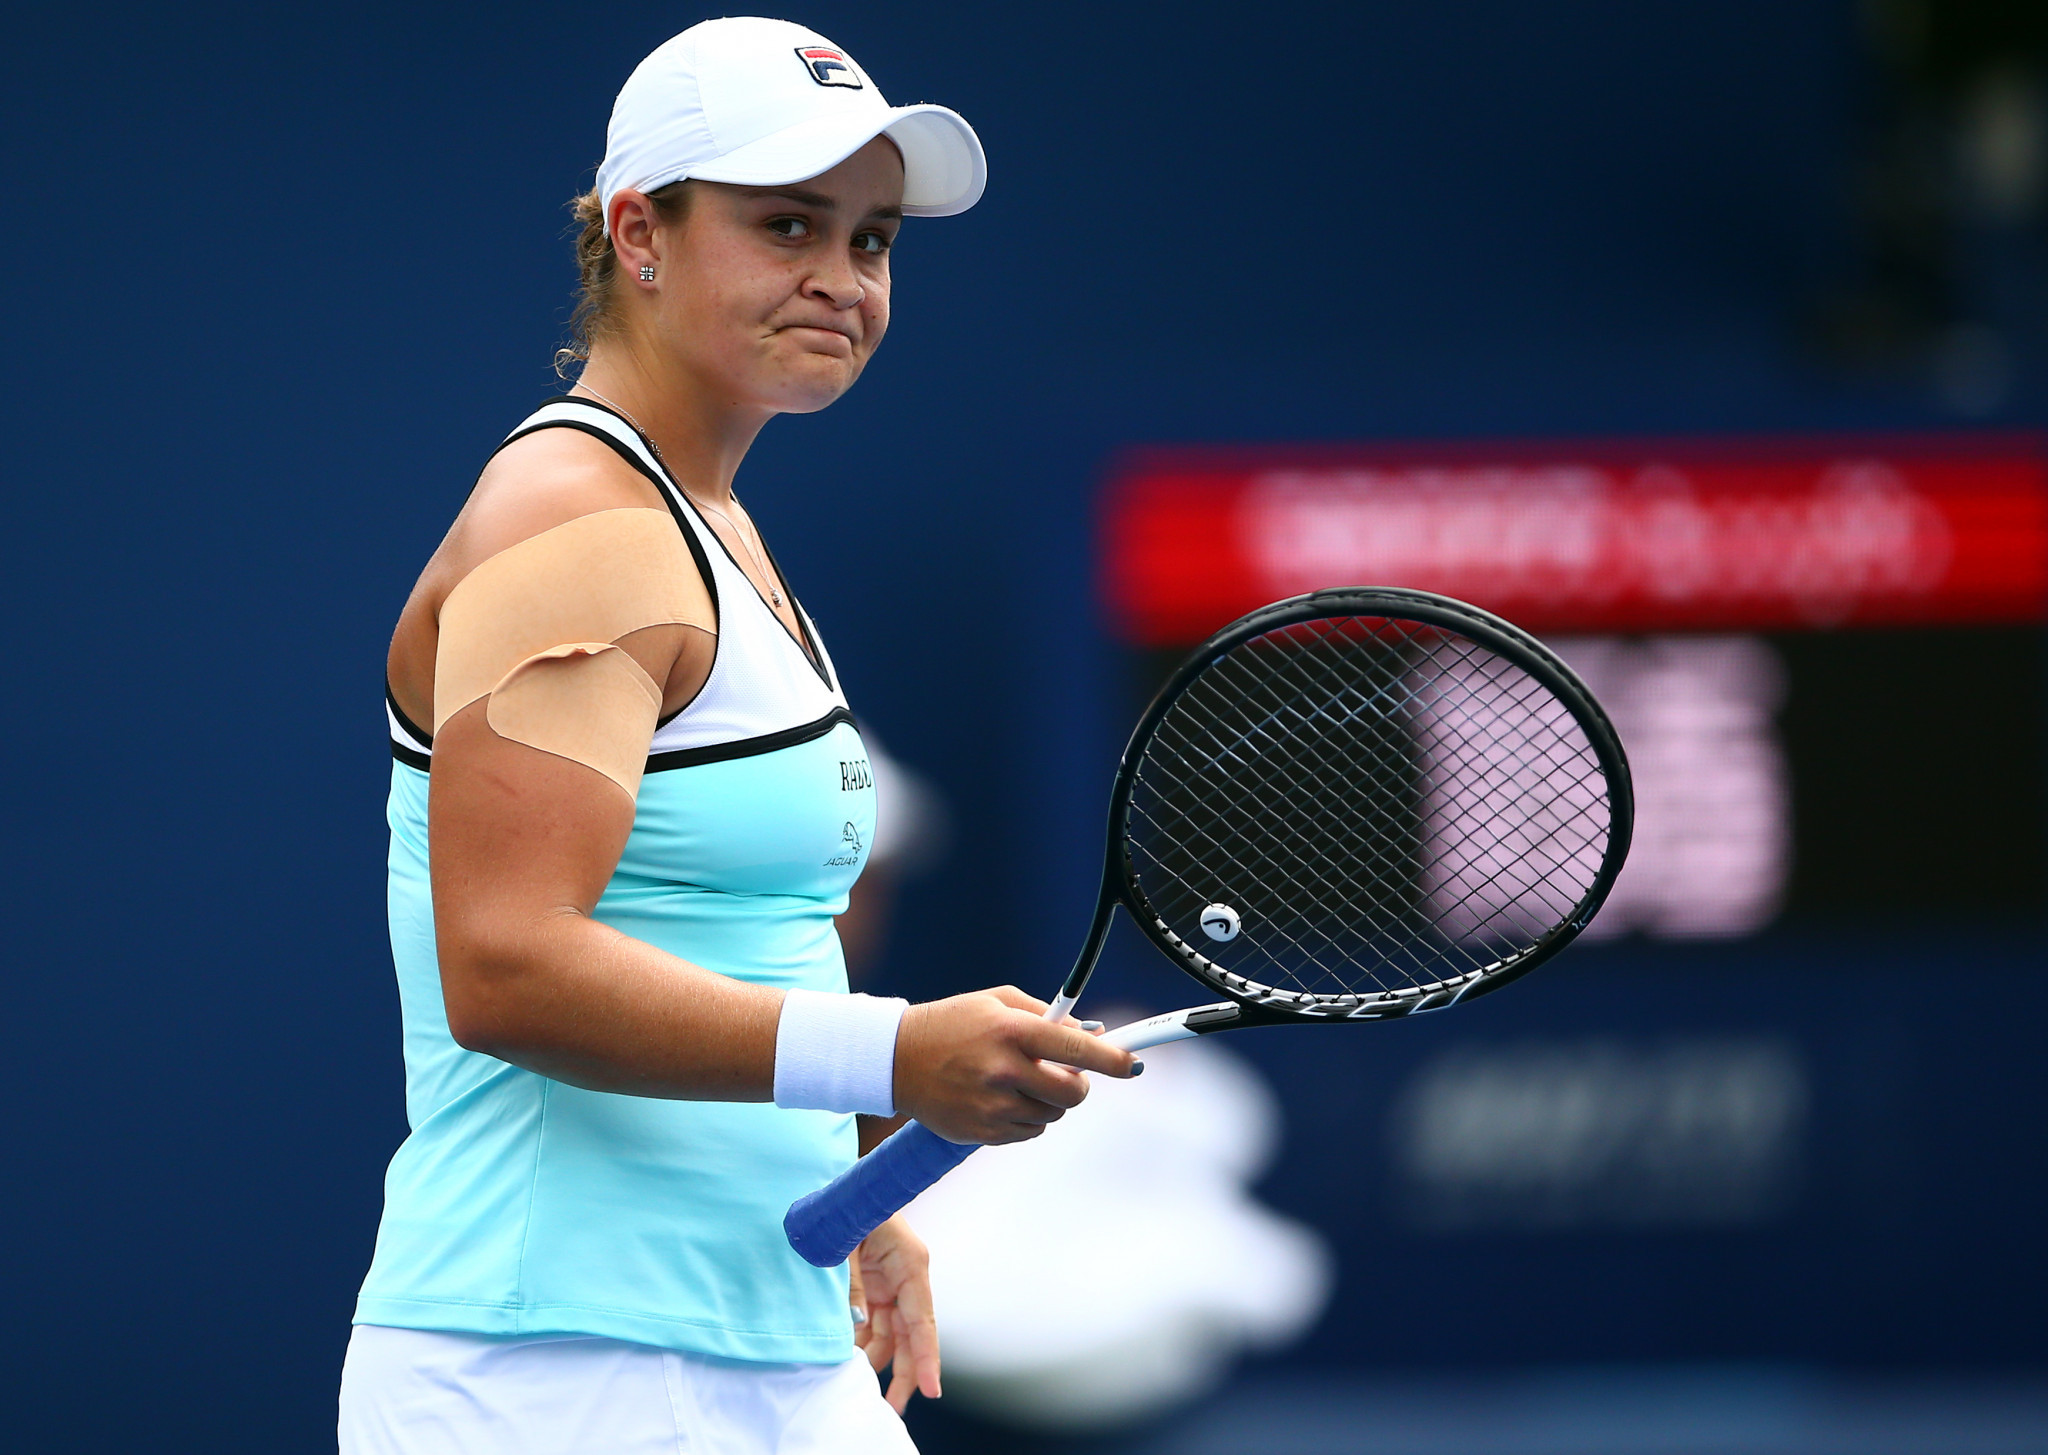 Barty poised to lose world number one ranking after defeat at Rogers Cup